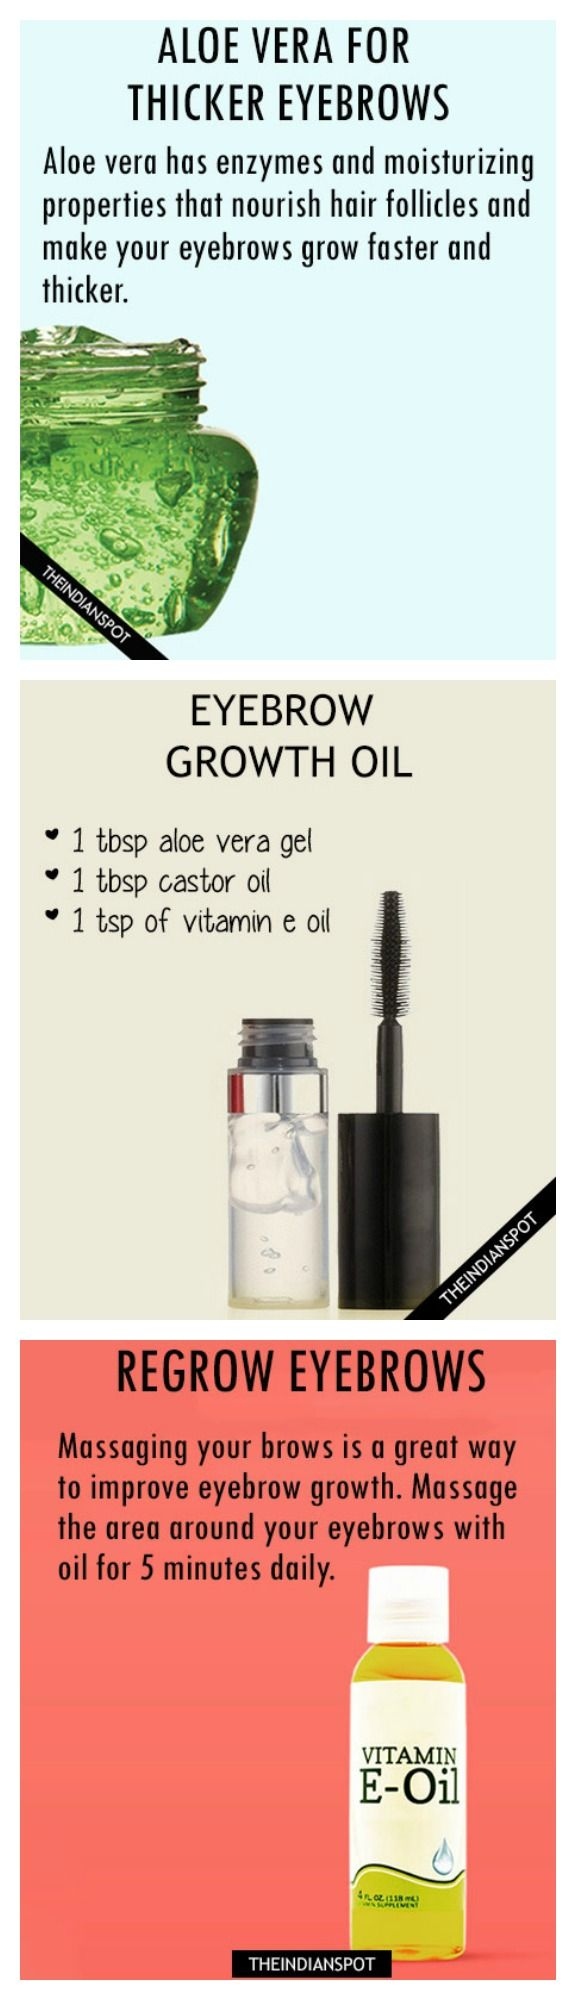 Top 10 Diy Products For Faster And Thicker Eyebrow Growth Hair